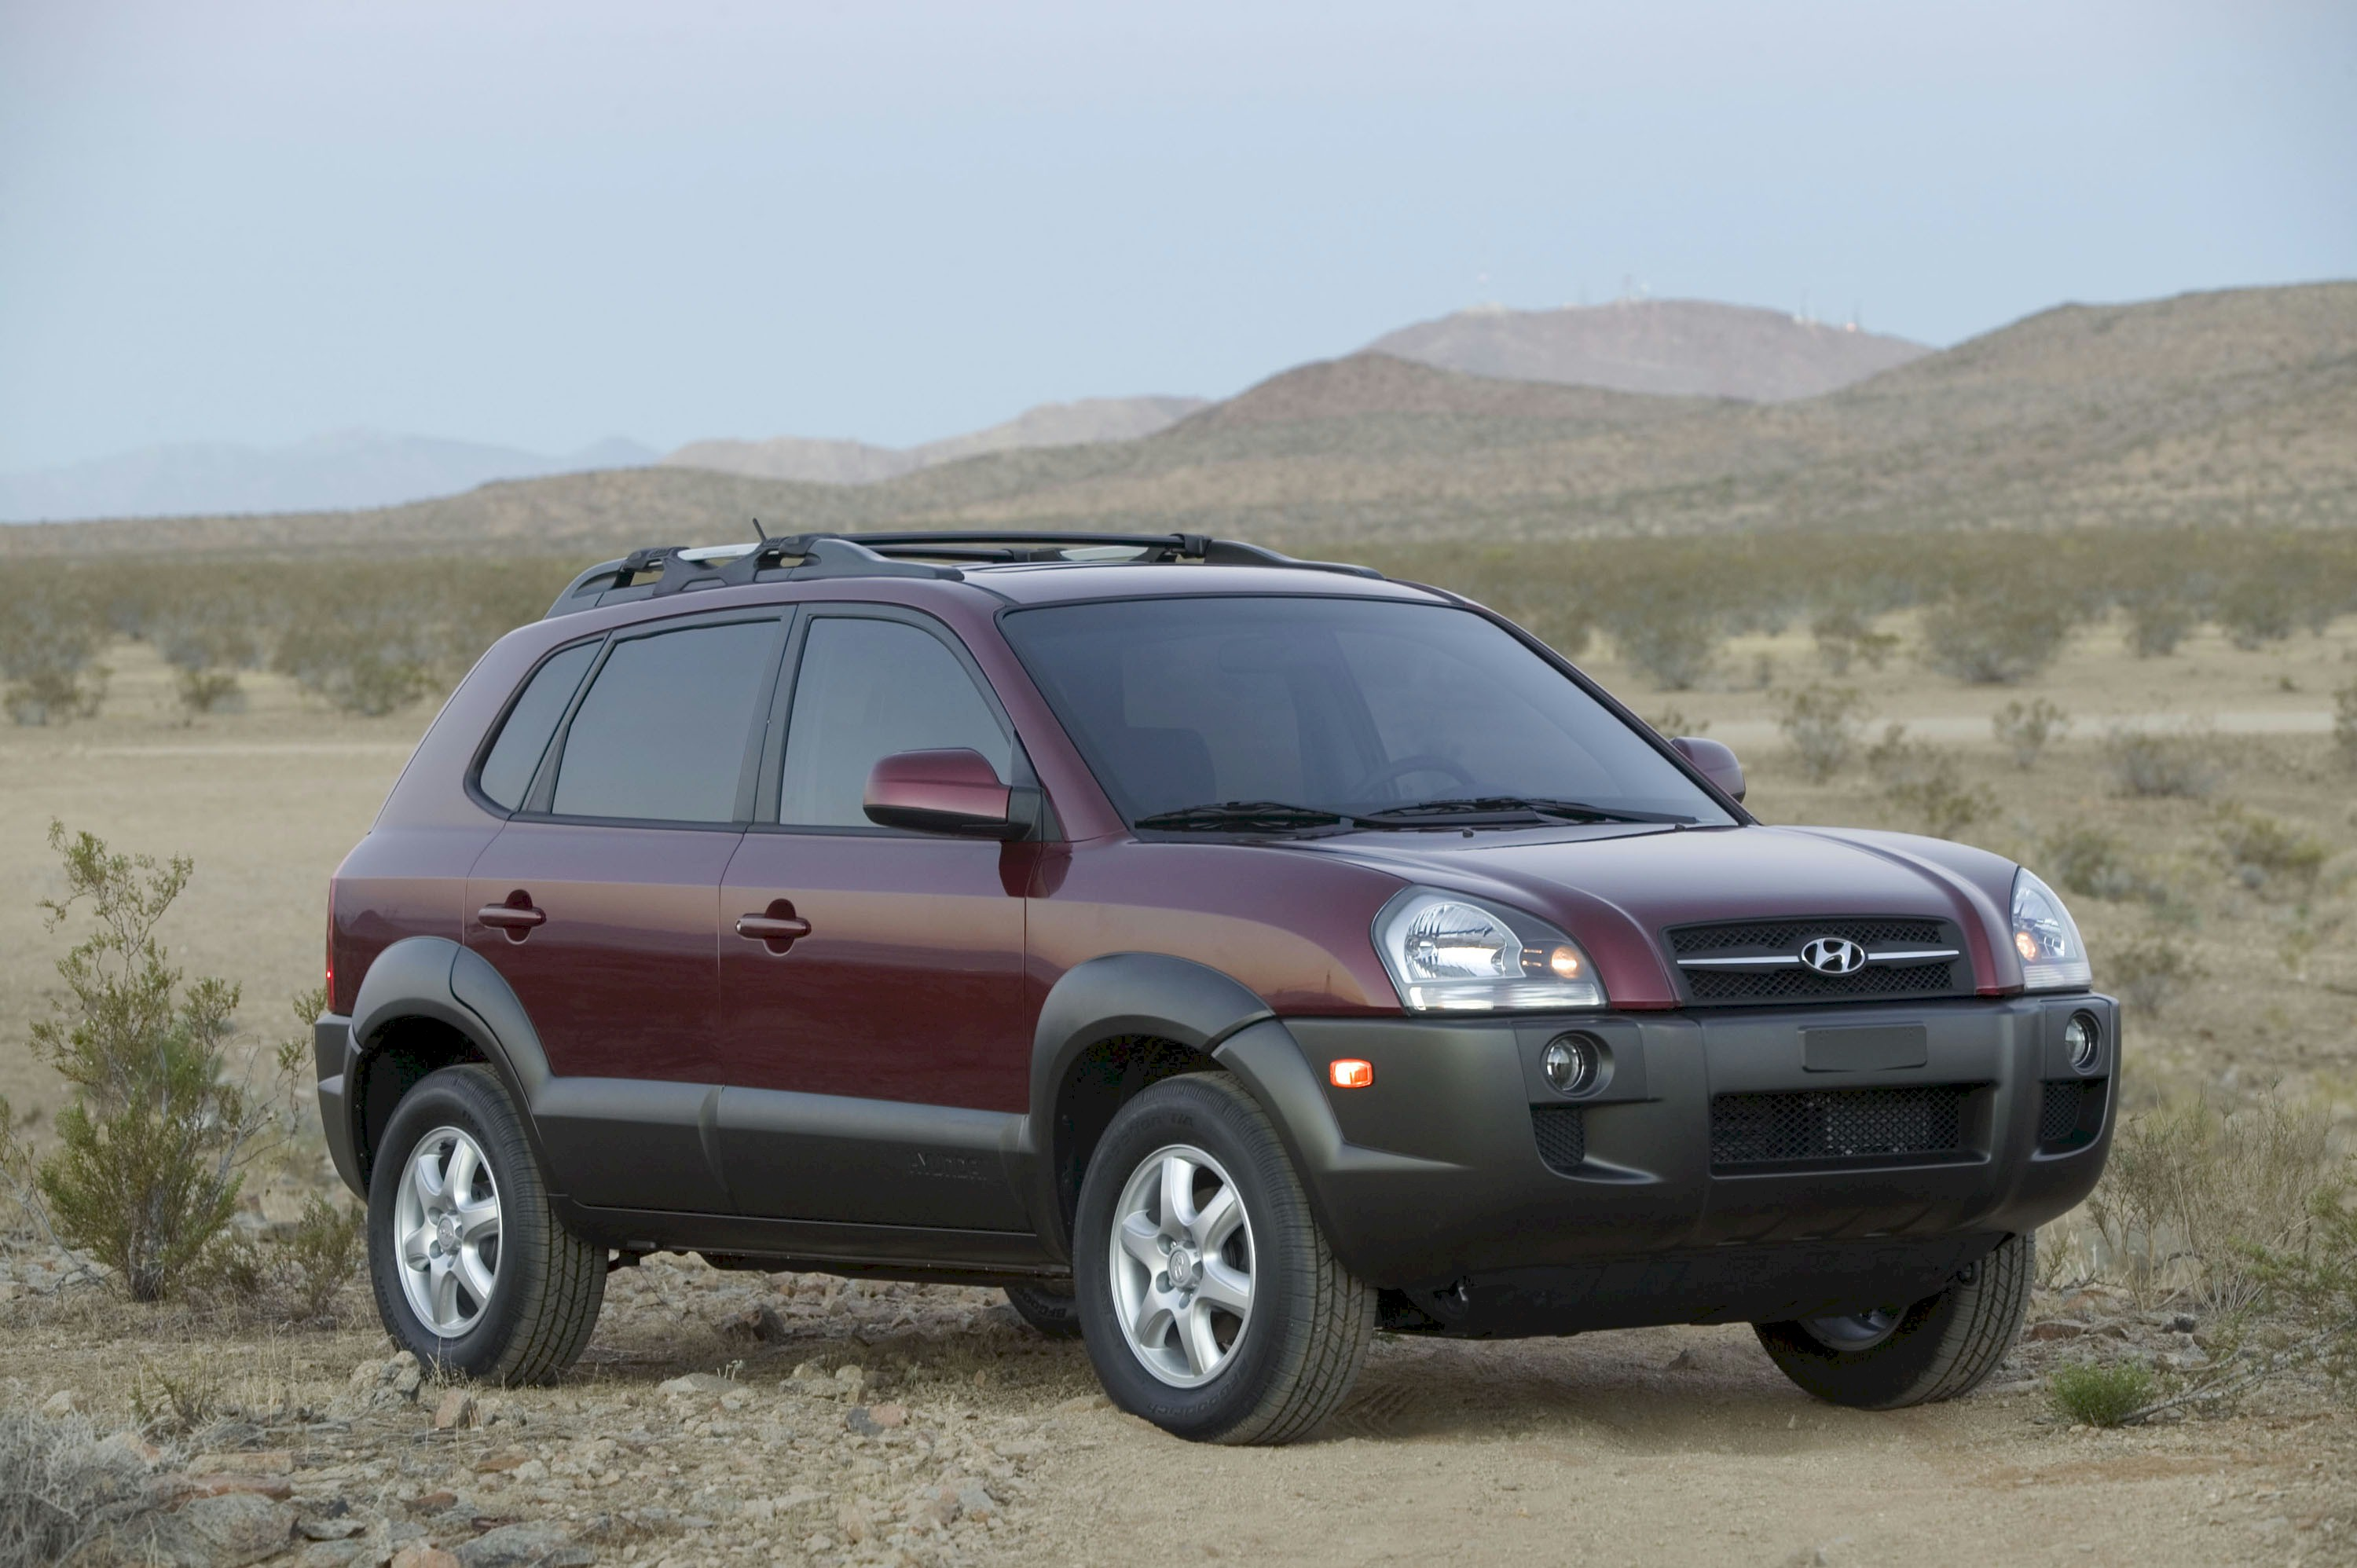 2005 hyundai tucson pictures information and specs. Black Bedroom Furniture Sets. Home Design Ideas